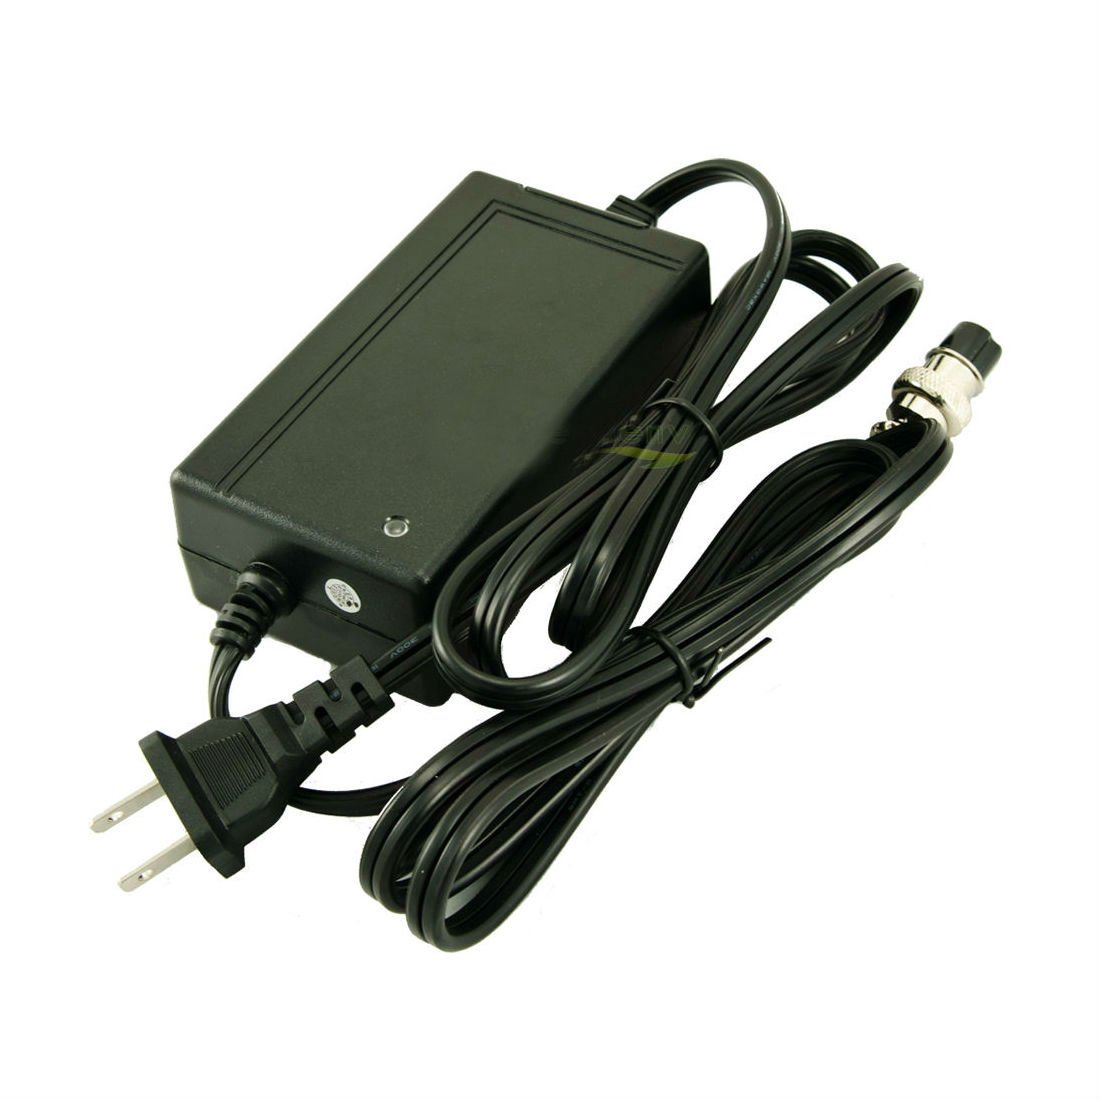 24V 1.8A Battery Charger for Razor E100 E125 E200 E300 E500S MX350 PR200 Scooter Best Selling Item